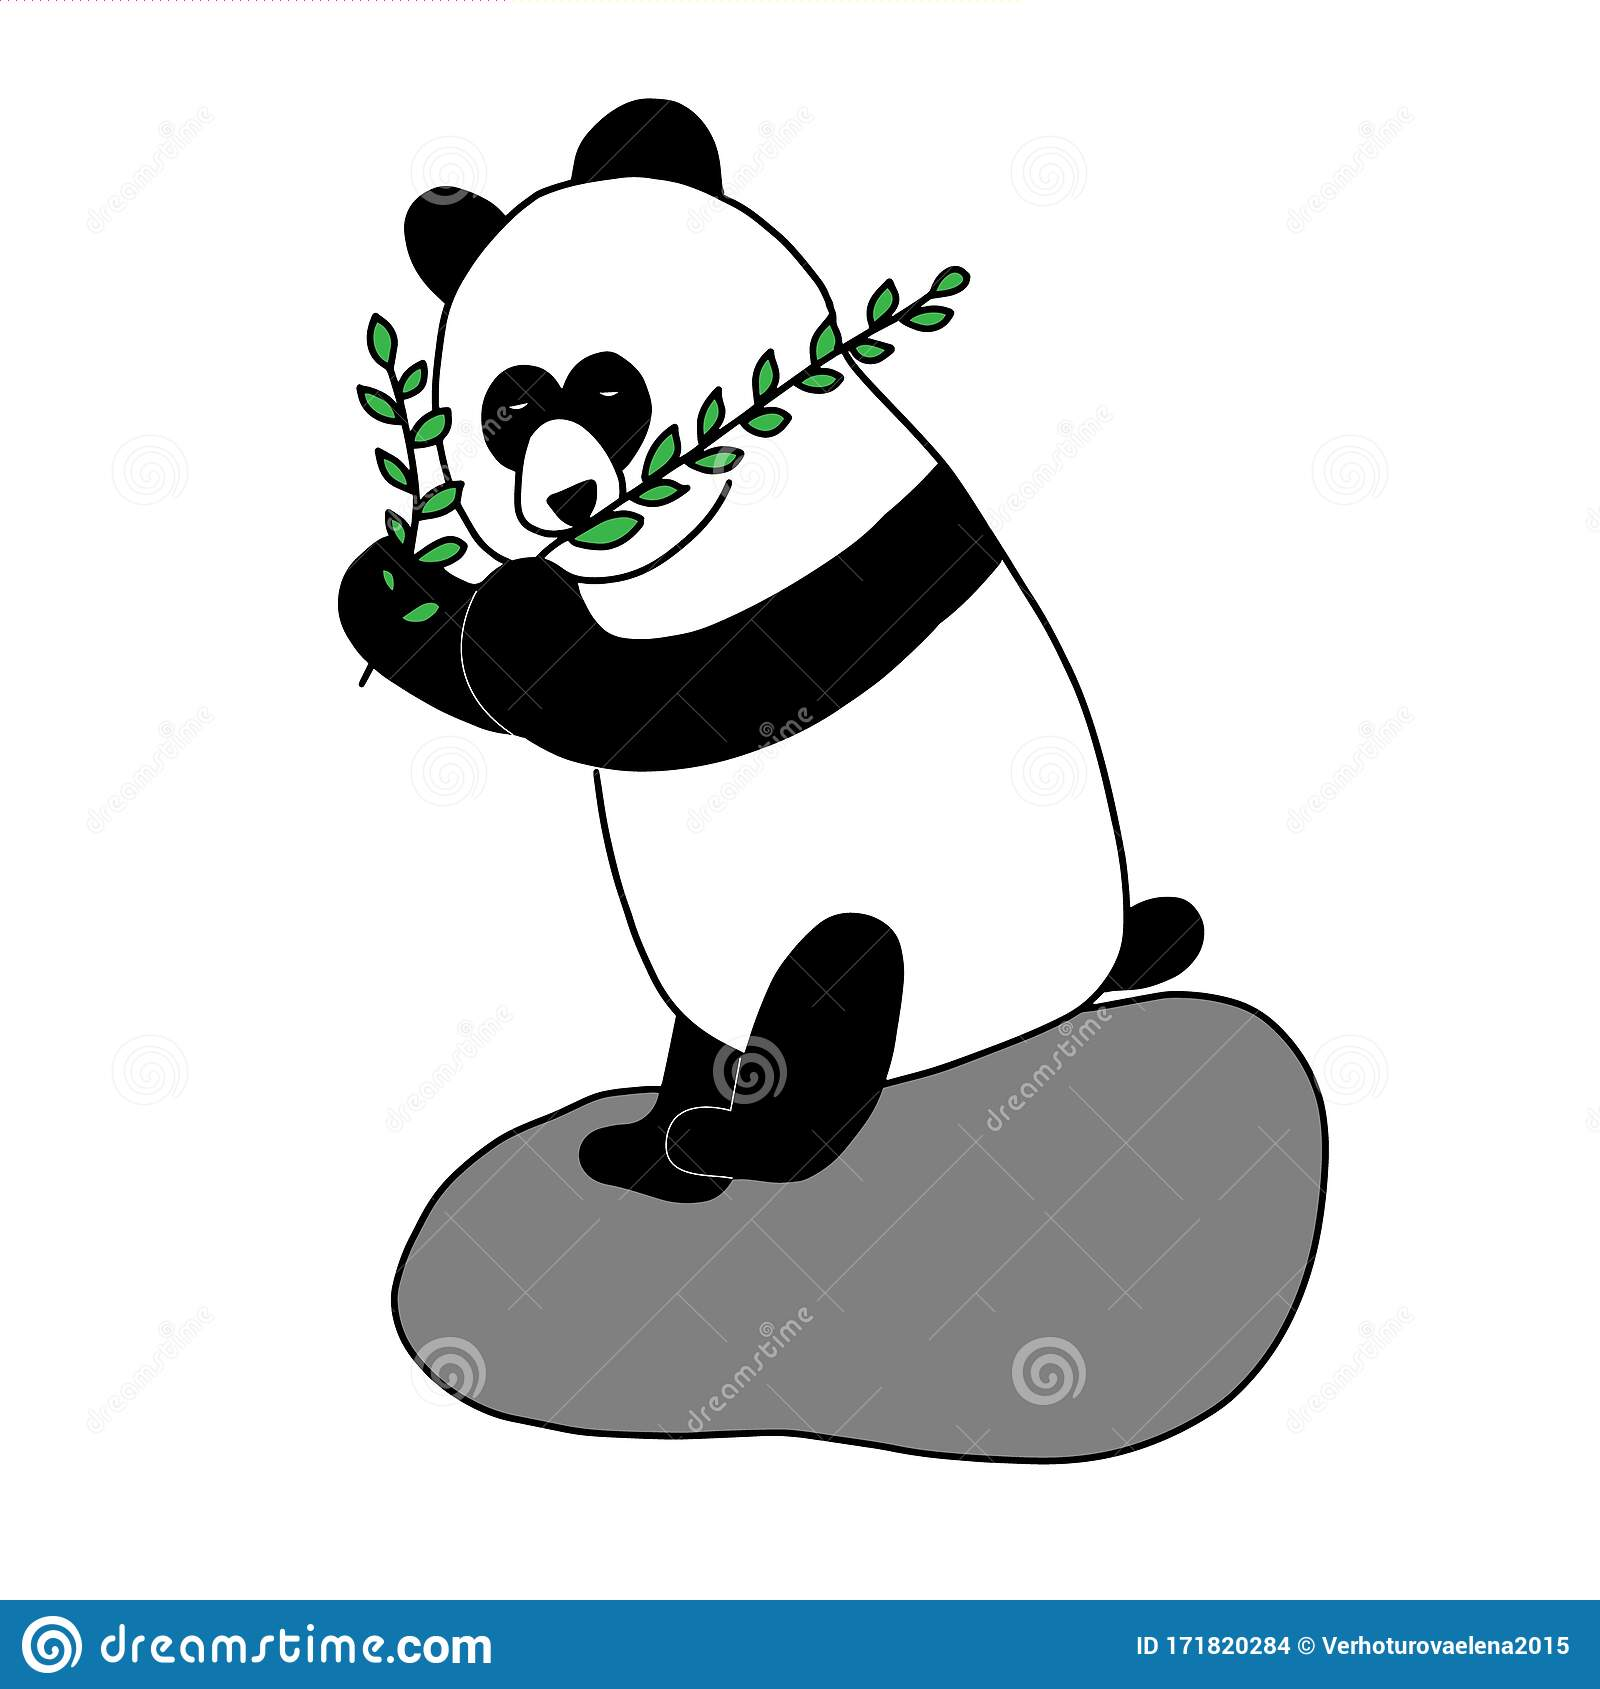 Doodle Illustration Cute Baby Background Panda Bear Logo Baby Collection Beautiful Sketch Poster With Black Panda Stock Vector Illustration Of Beautiful Adorable 171820284